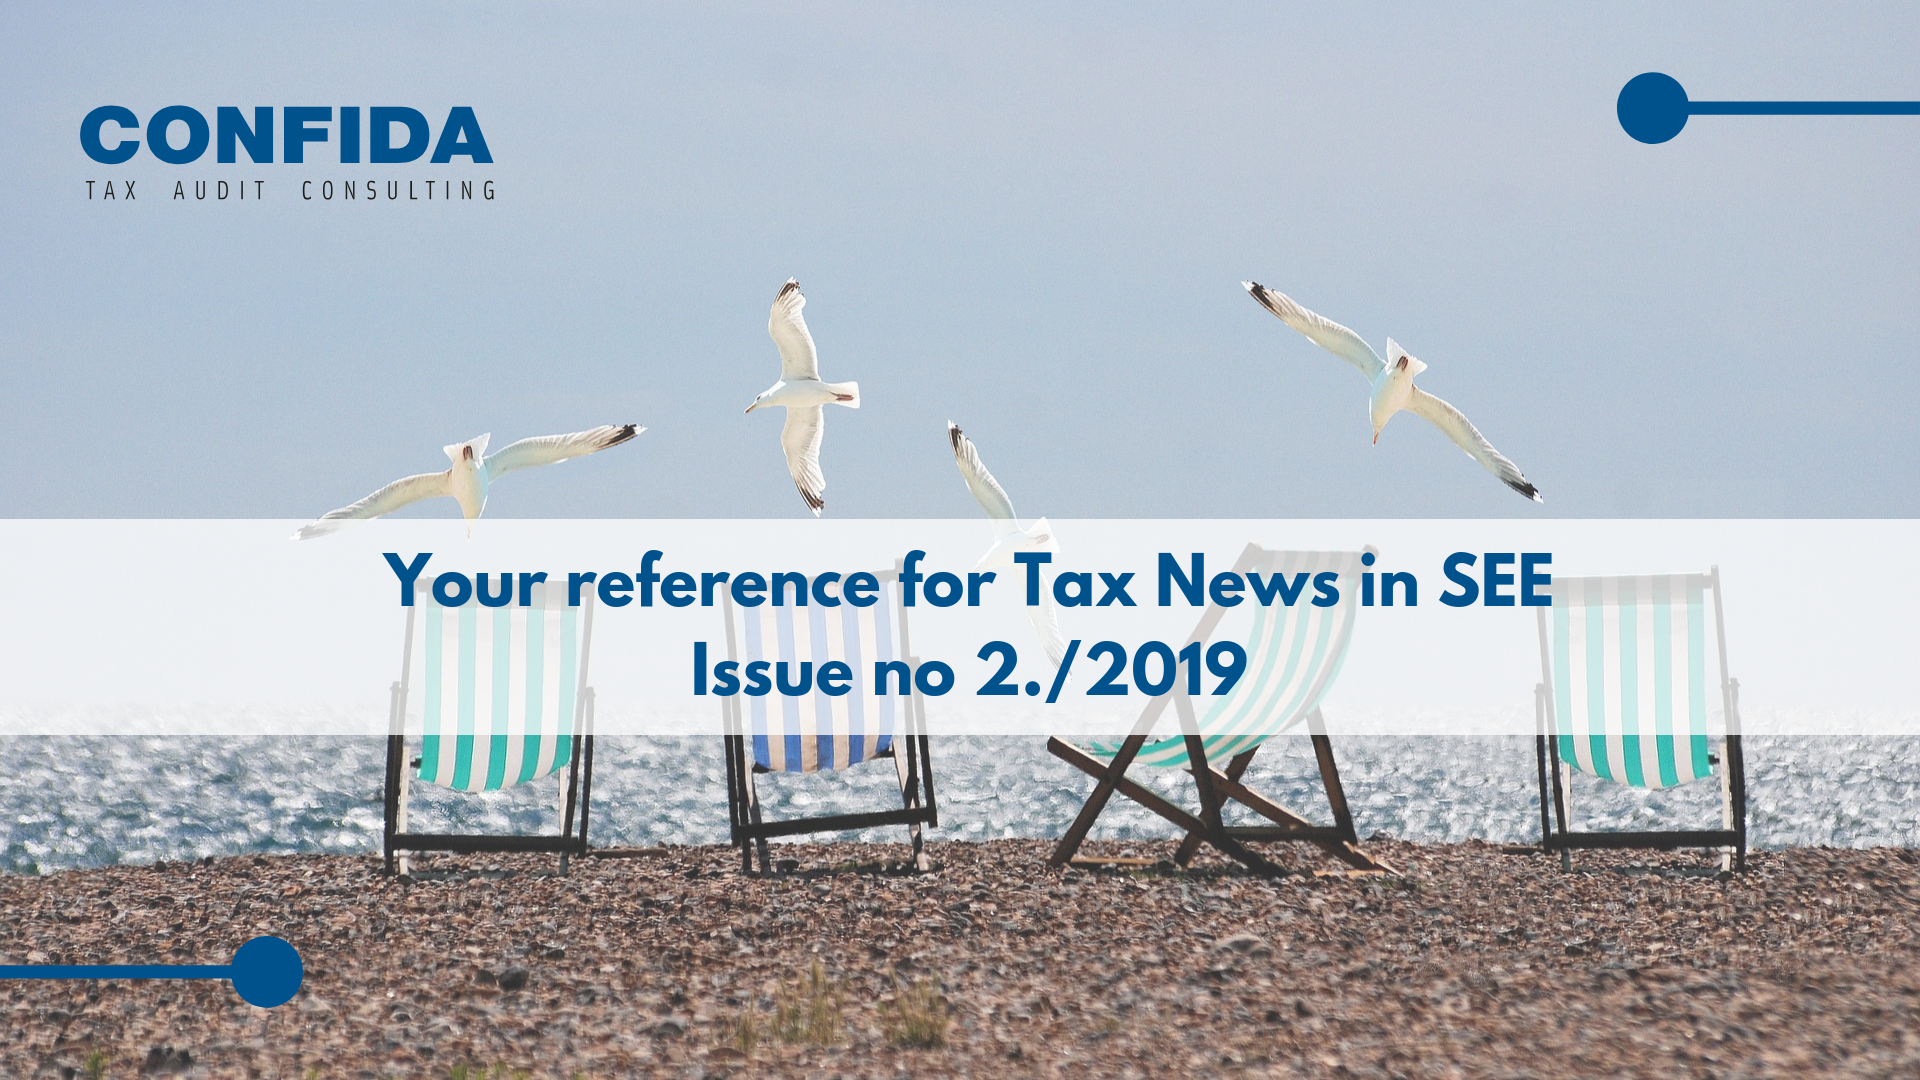 Your reference for Tax News in SEE: Issue no 2./2019